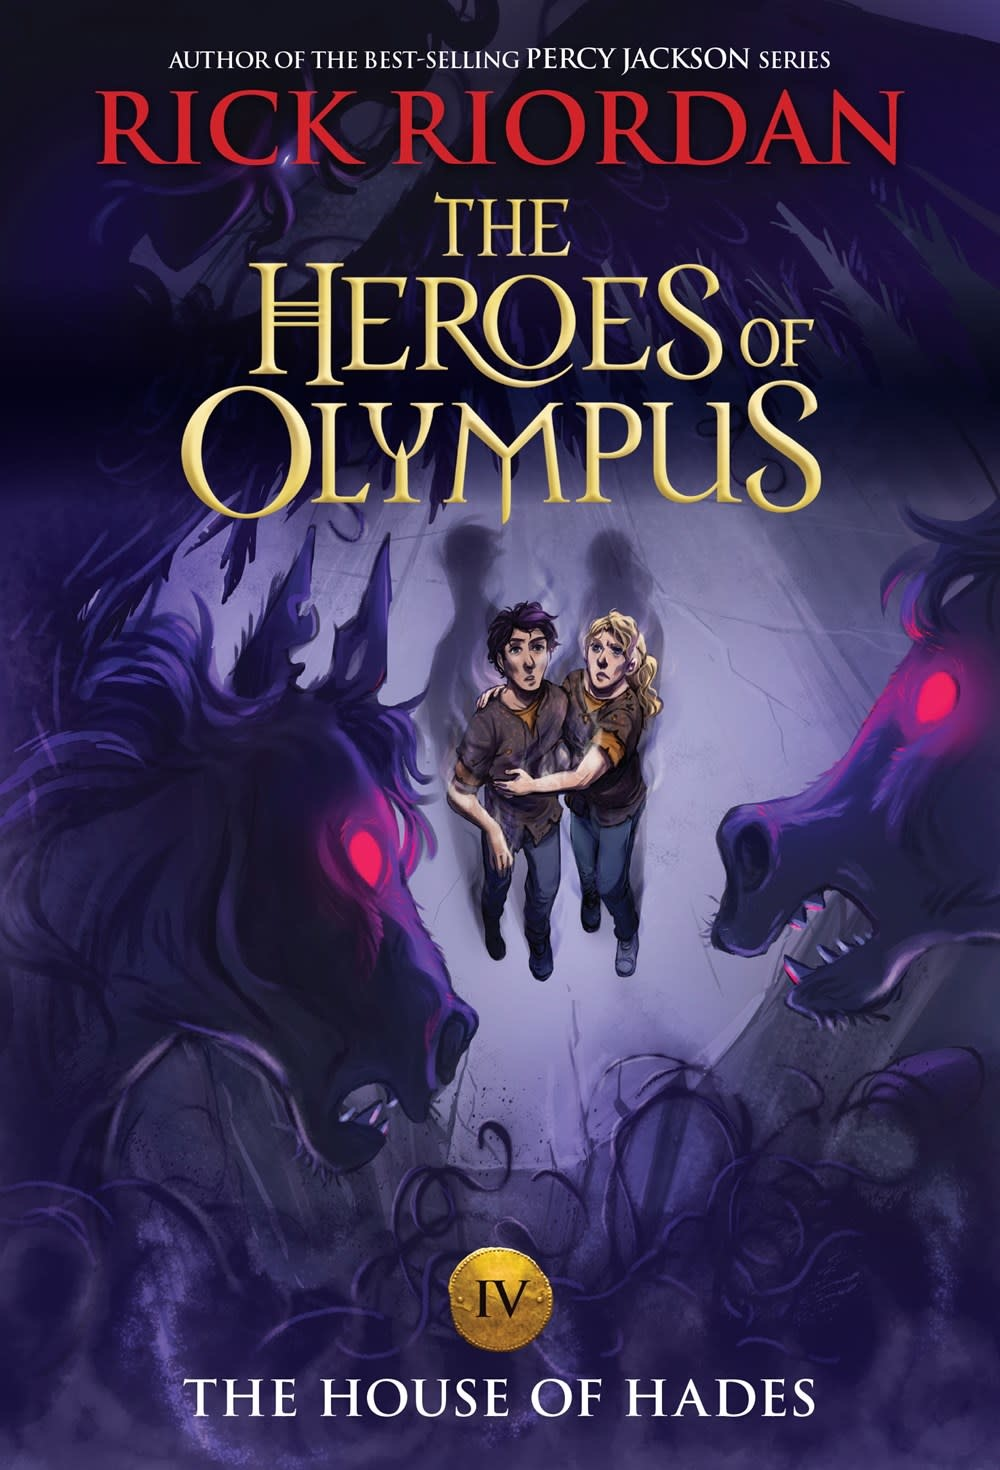 Disney-Hyperion Heroes of Olympus 04 The House of Hades (Percy Jackson) (new cover)